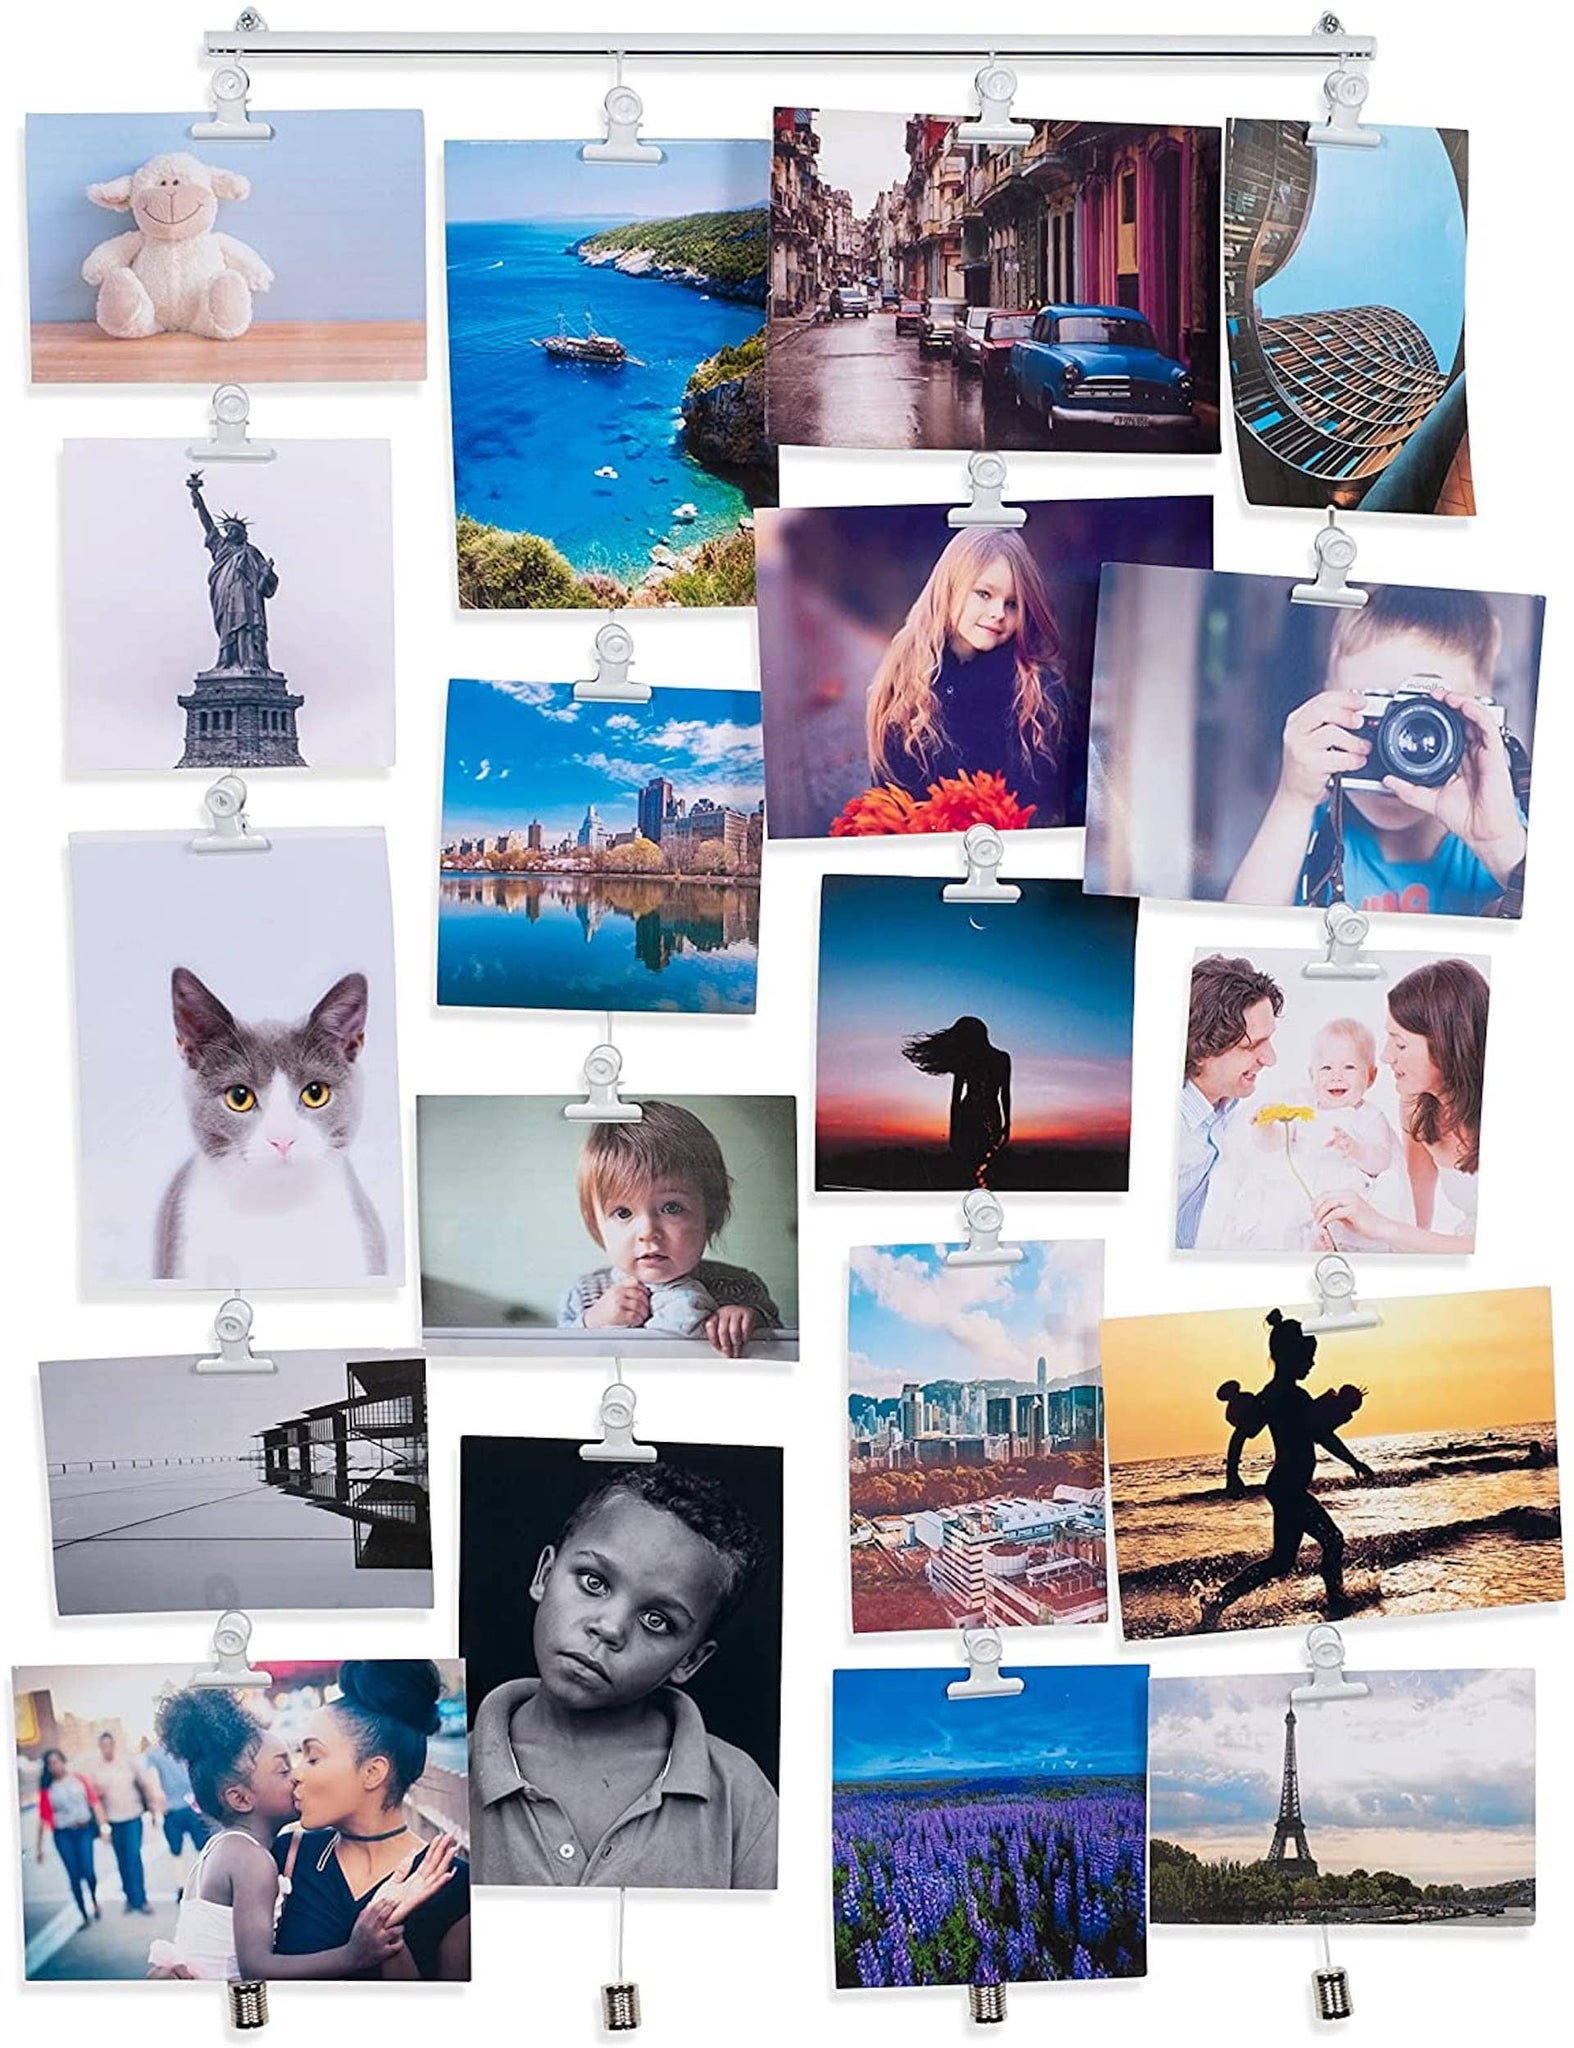 Best Photo Gifts for Photographers - Ideas Photographer Lovers - Collage